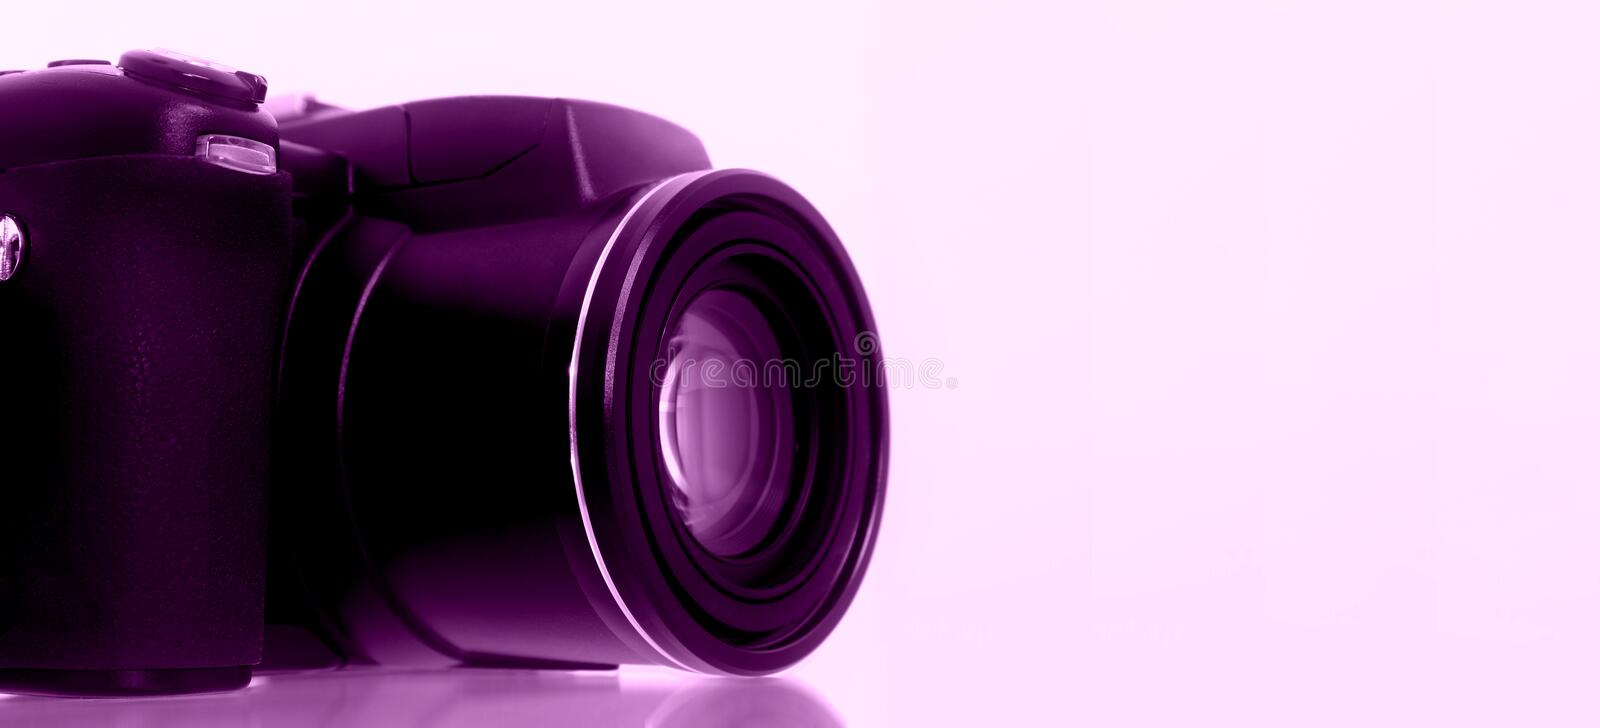 Digital Camera with Grape Background stock images